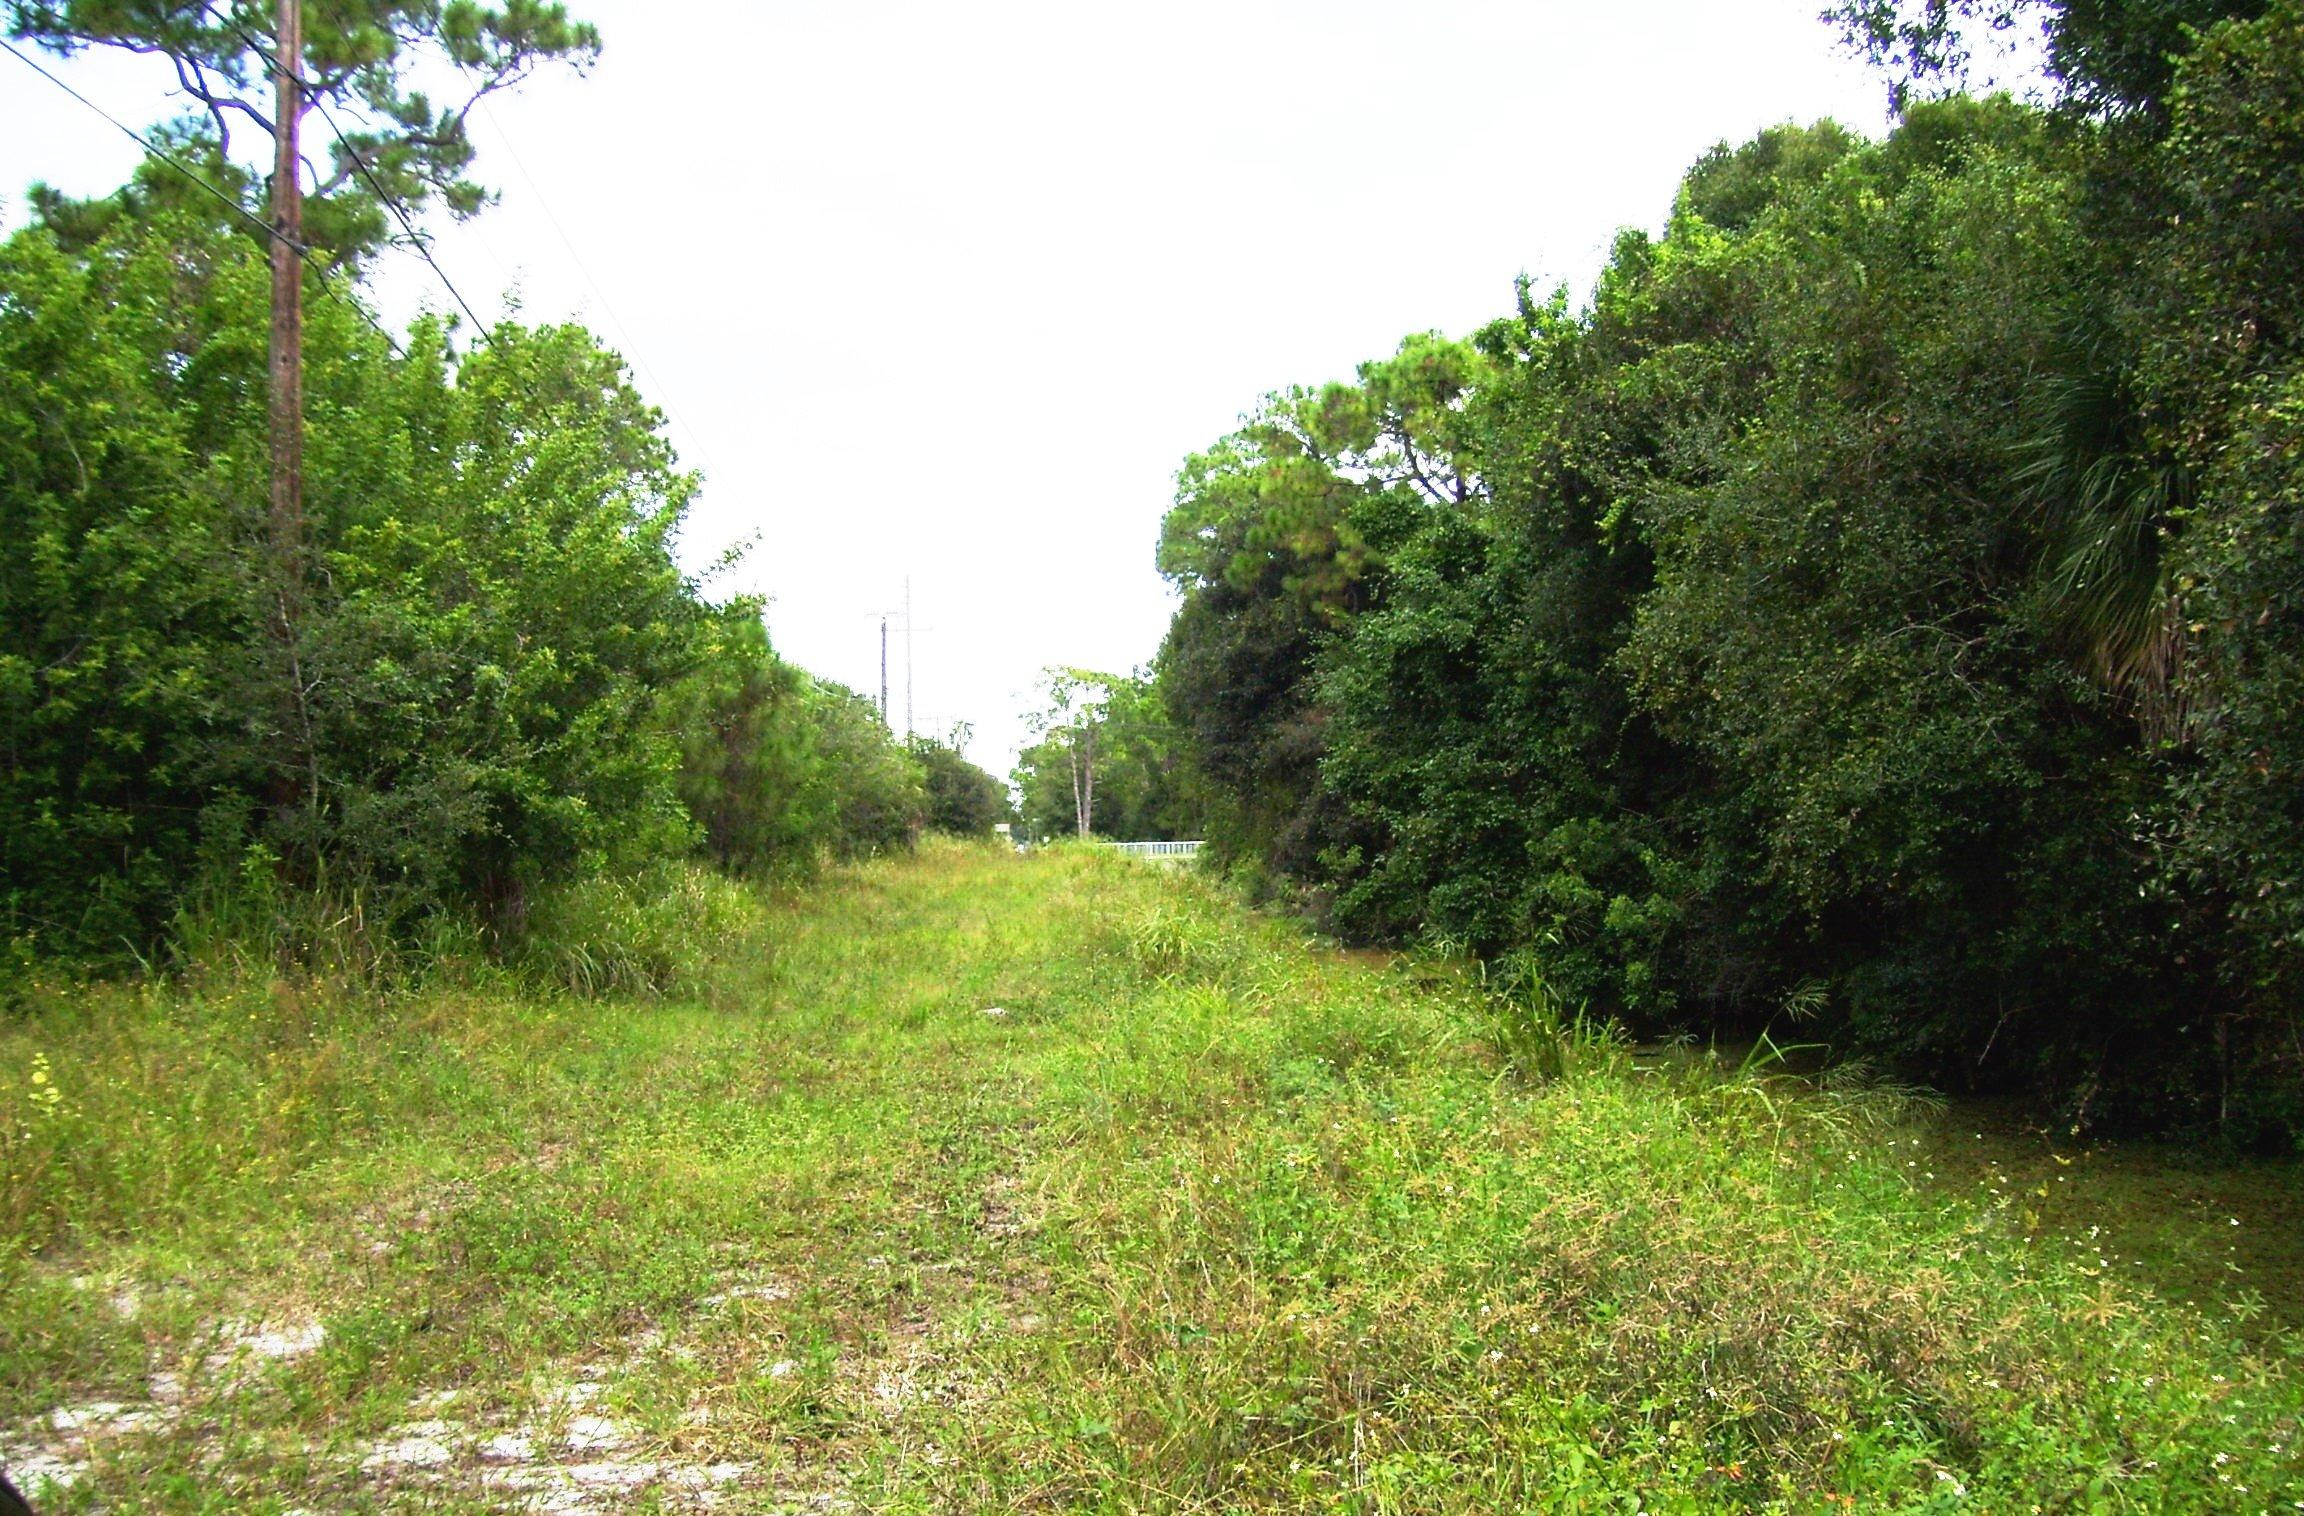 Tbd Turnpike Feeder/kings Hwy Road, Fort Pierce, FL 34950